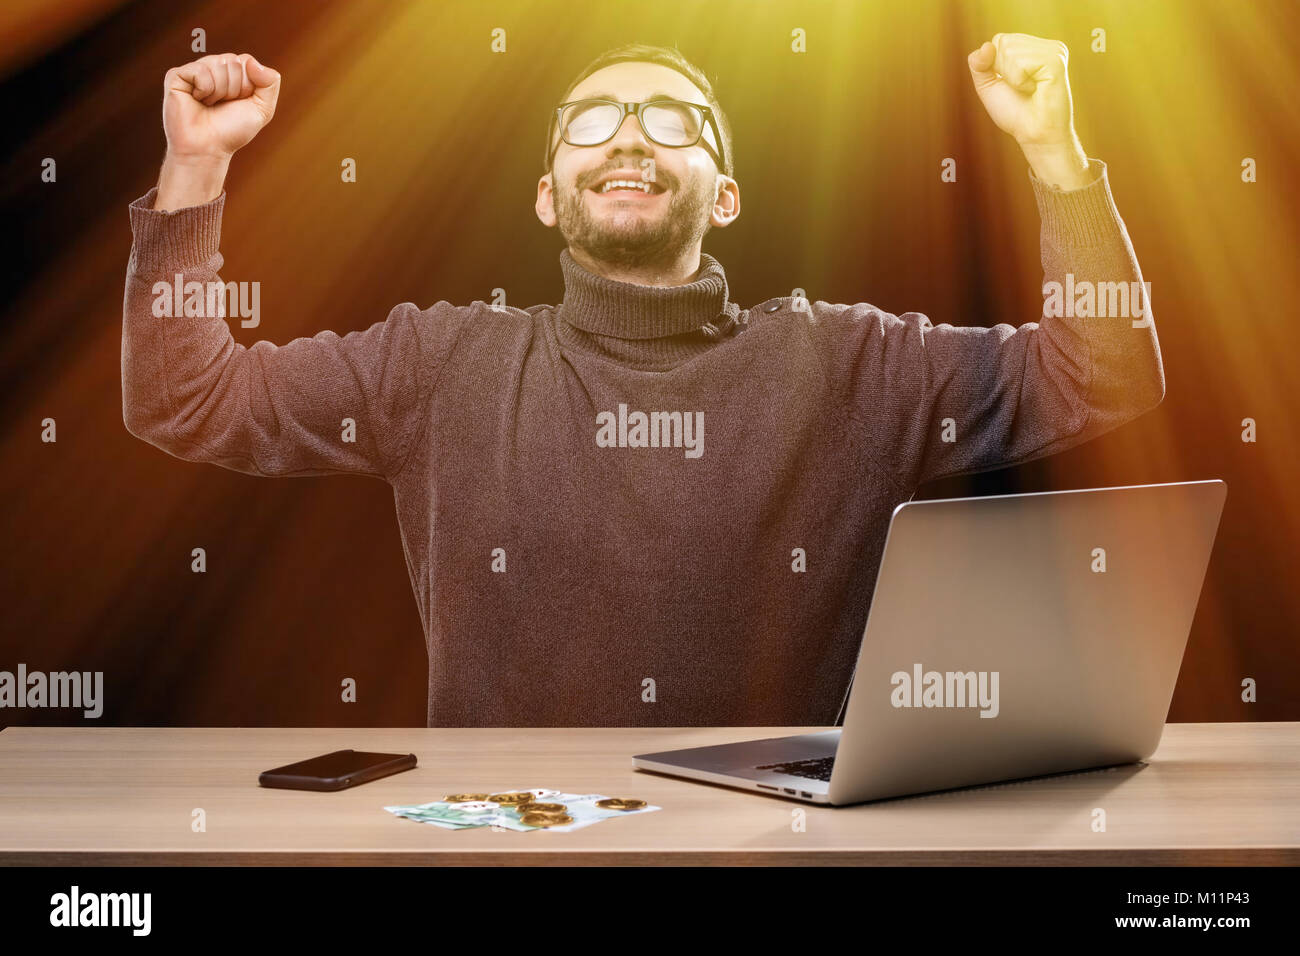 Triumphant office worker succeeded in striking a good deal online - Stock Image